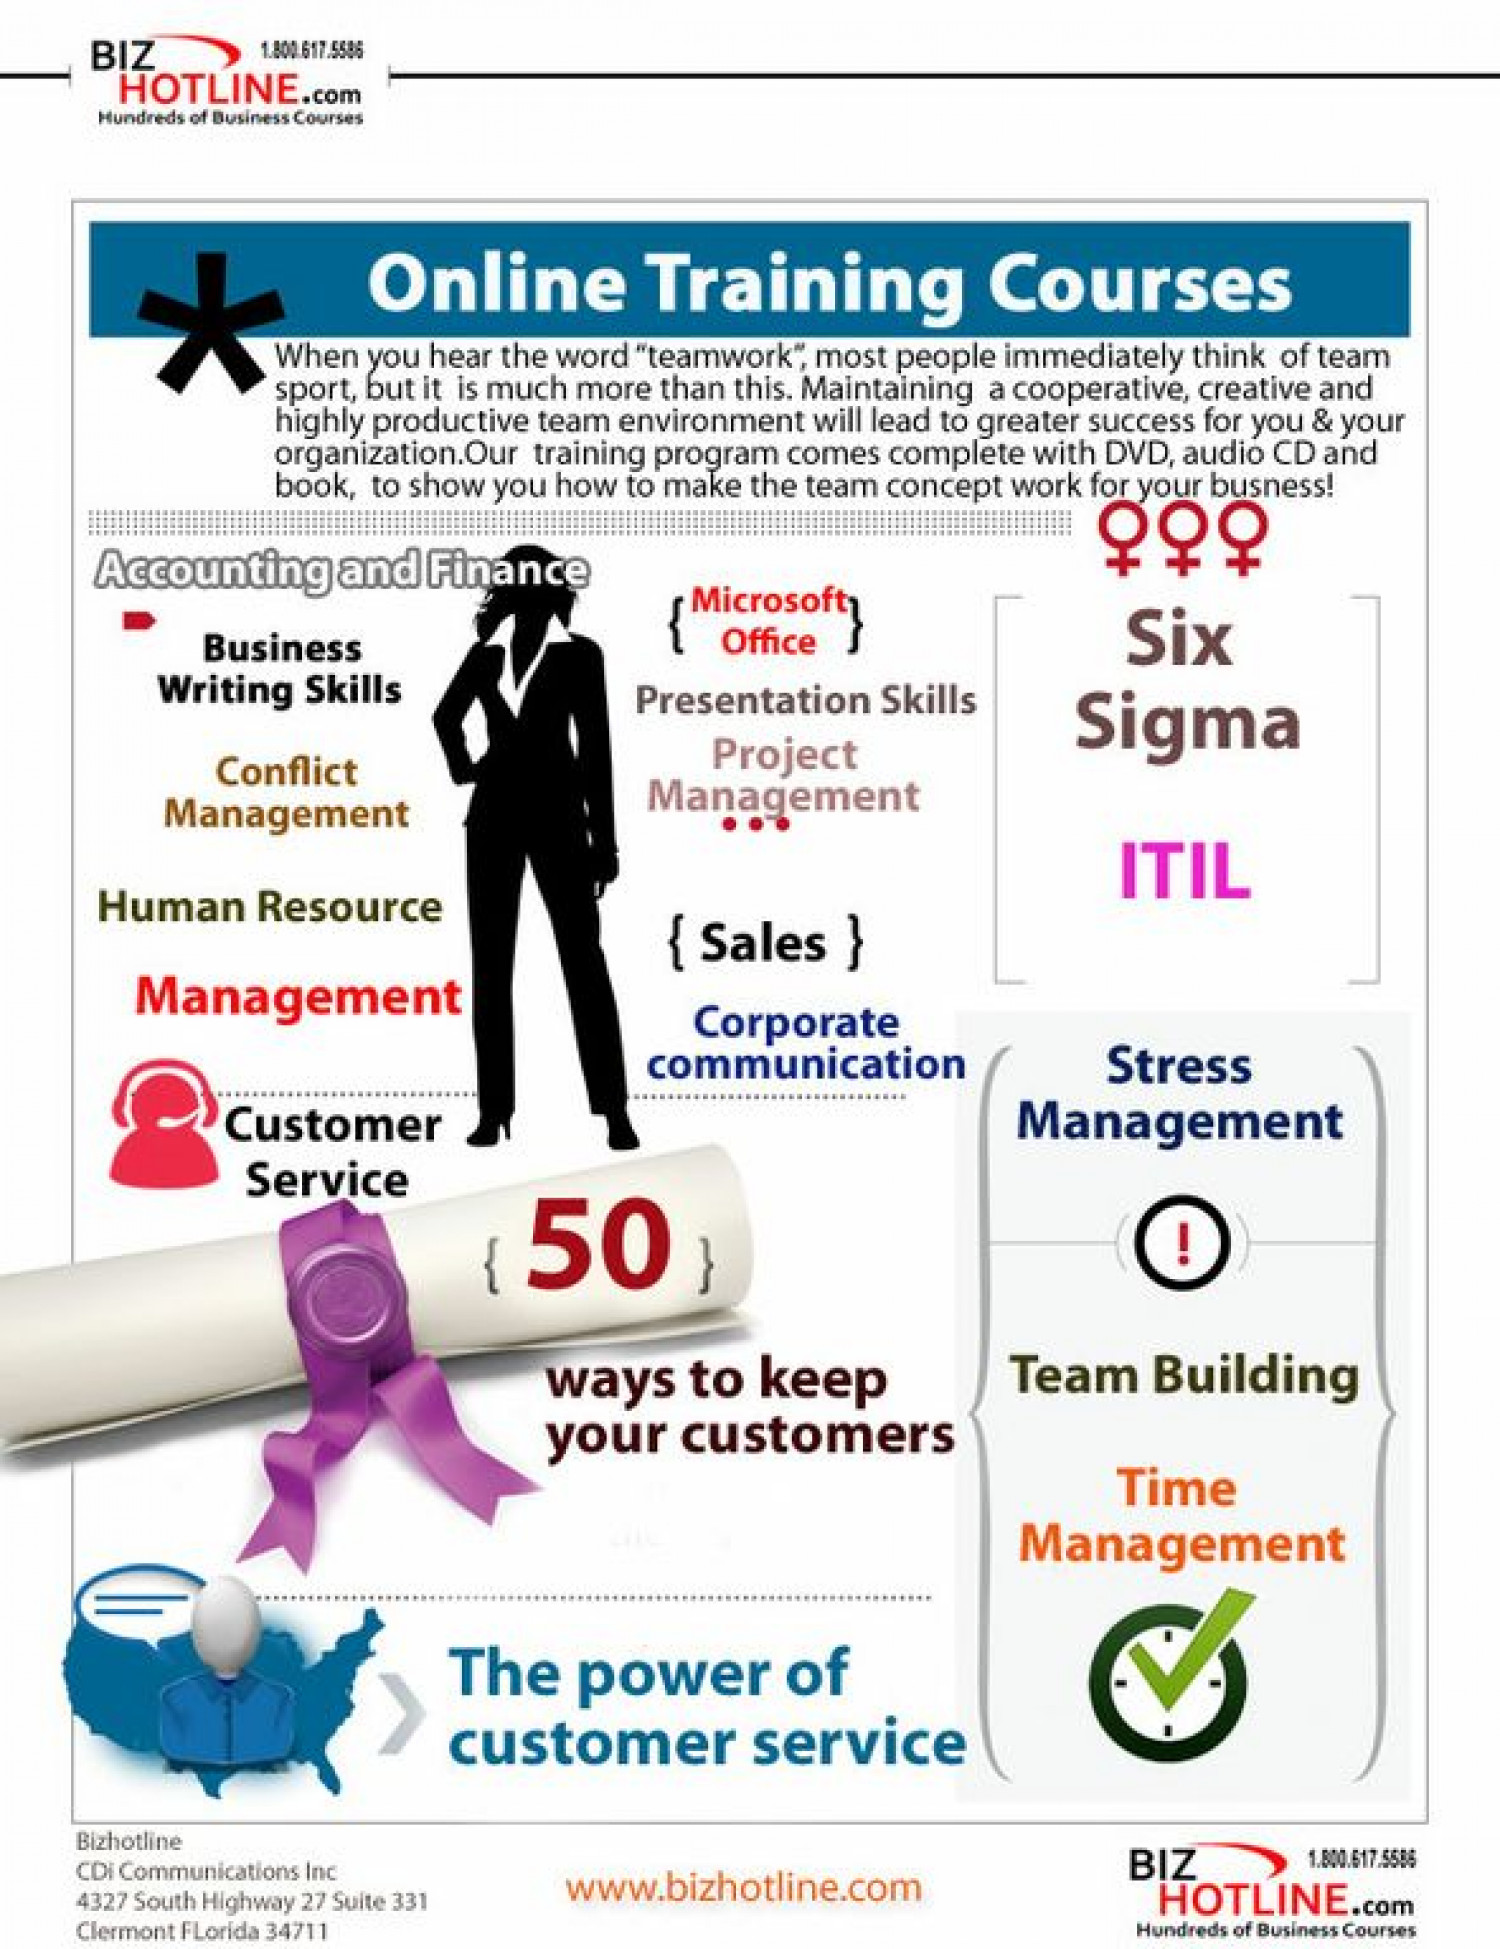 Bizhotline Business Training Courses Infographic